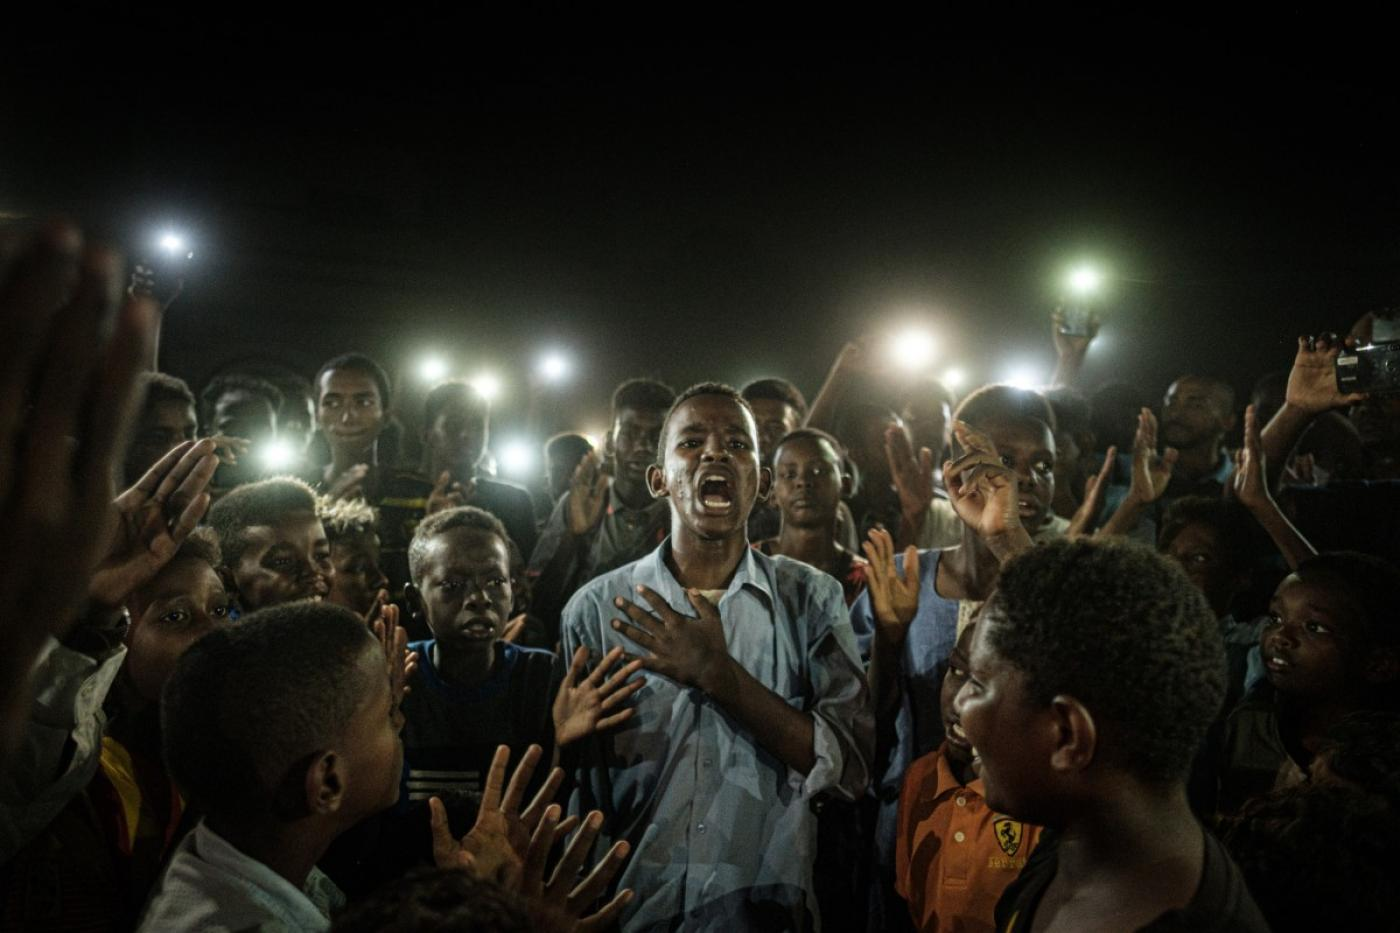 Poetry of Protest: The Award-Winning Photo That Captured Sudan's Revolution